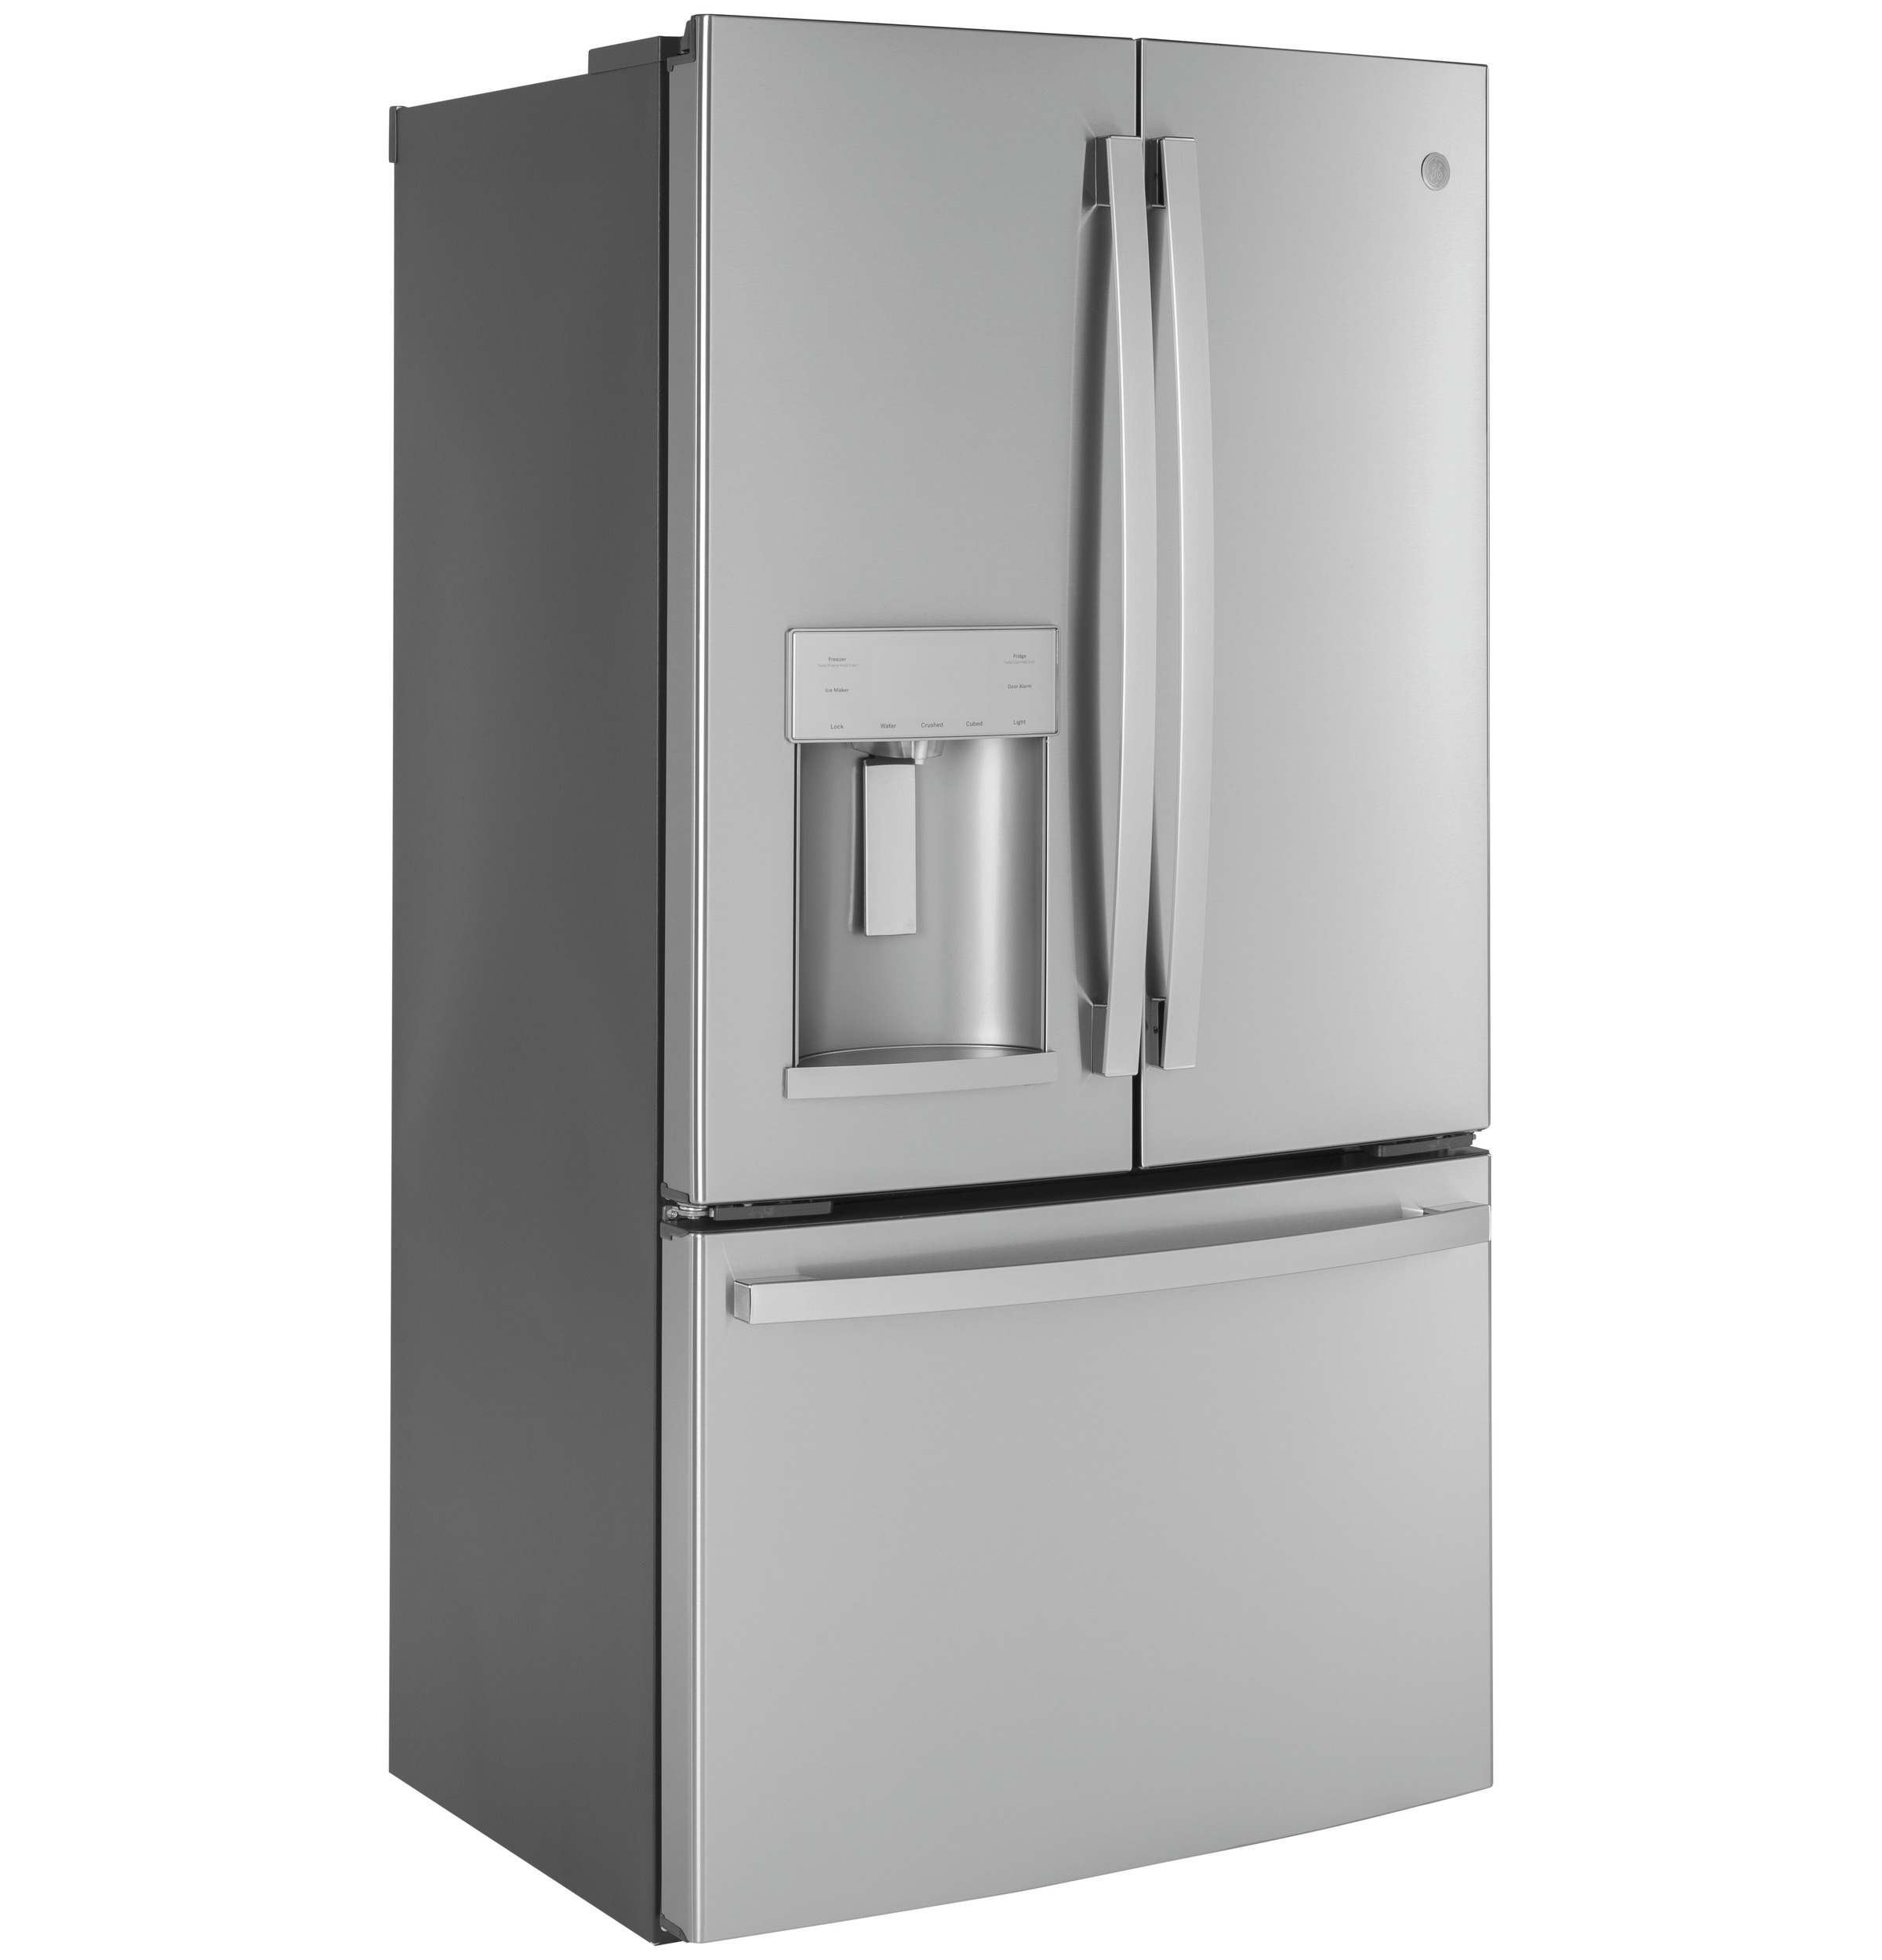 Model: GYE22GYNFS | GE GE® ENERGY STAR® 22.1 Cu. Ft. Counter-Depth Fingerprint Resistant French-Door Refrigerator